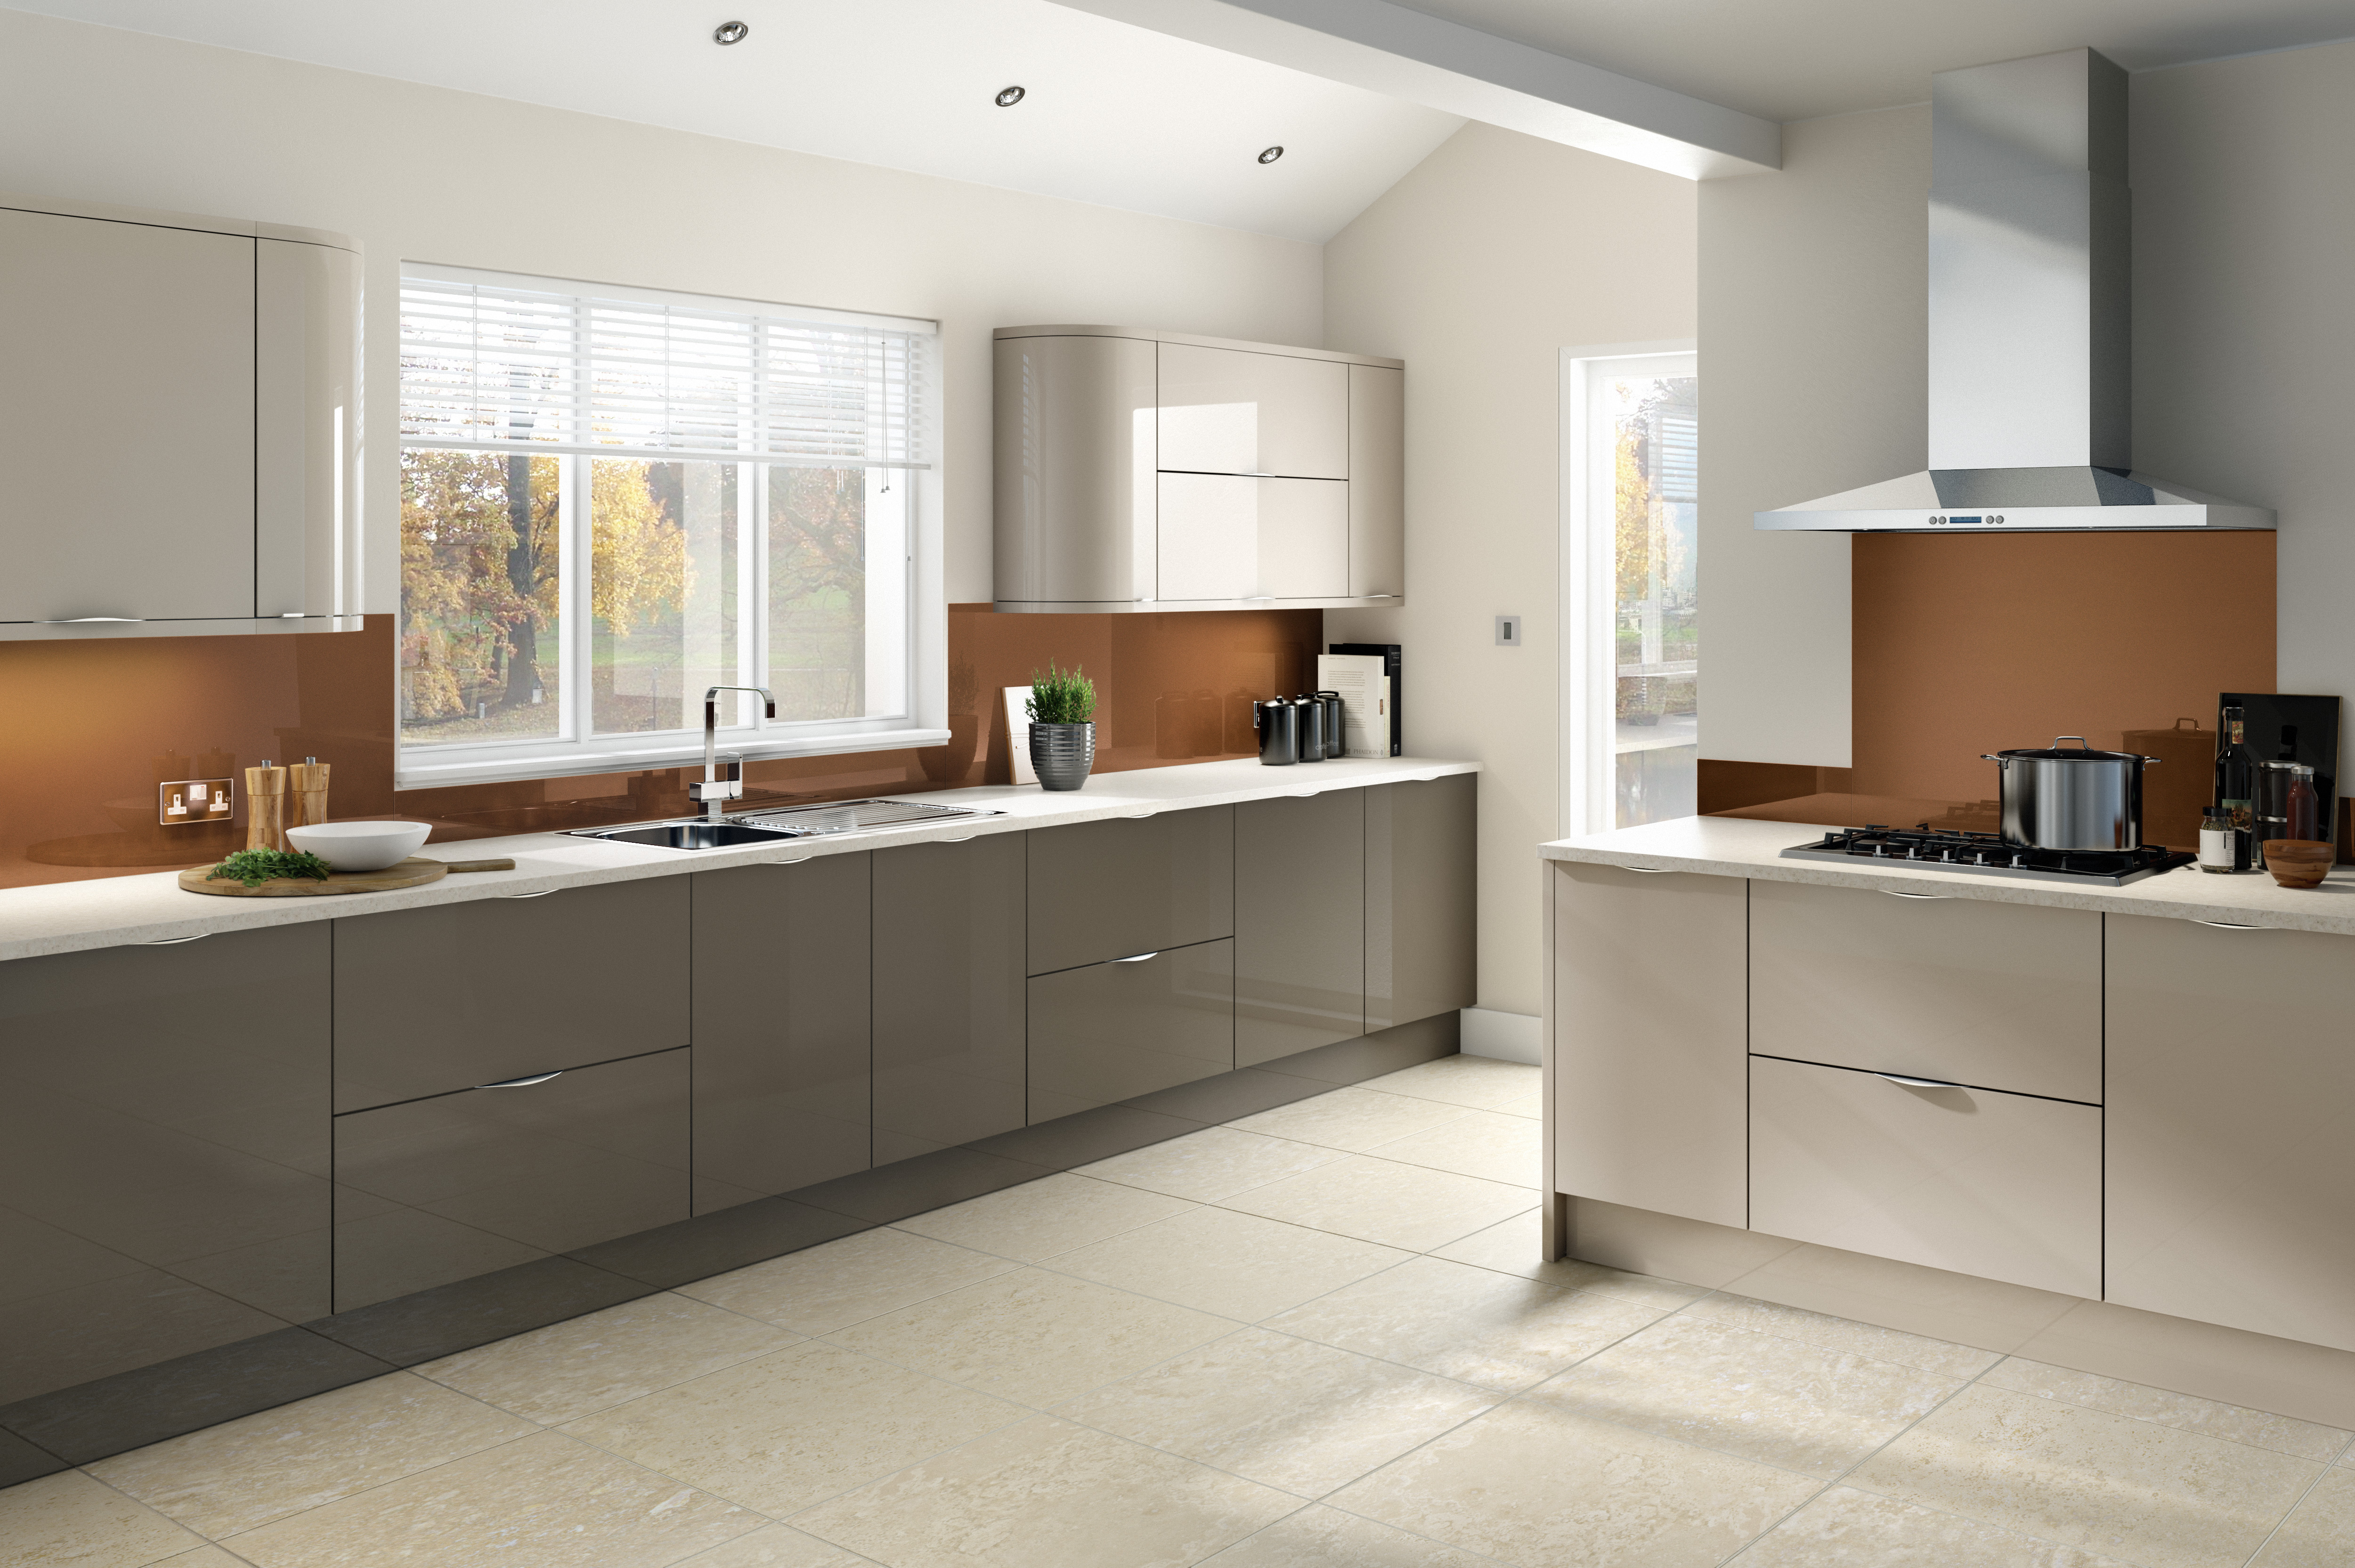 Made to measure kitchen collection interior designs - Kitchen interior designs pictures ...